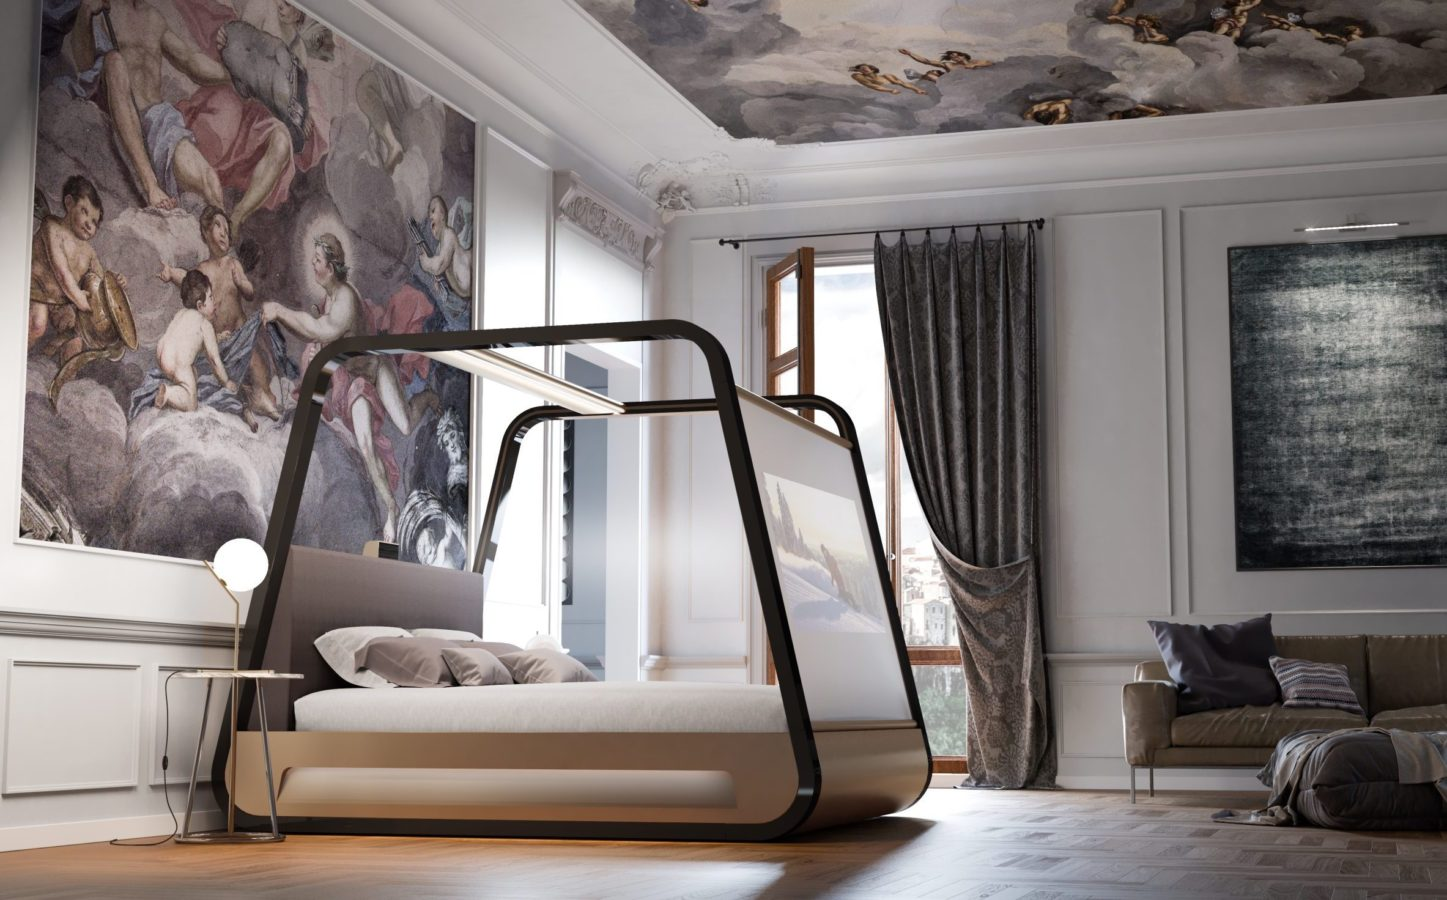 The Fanciest and Most Comfortable Beds Fit for a King (or Queen)